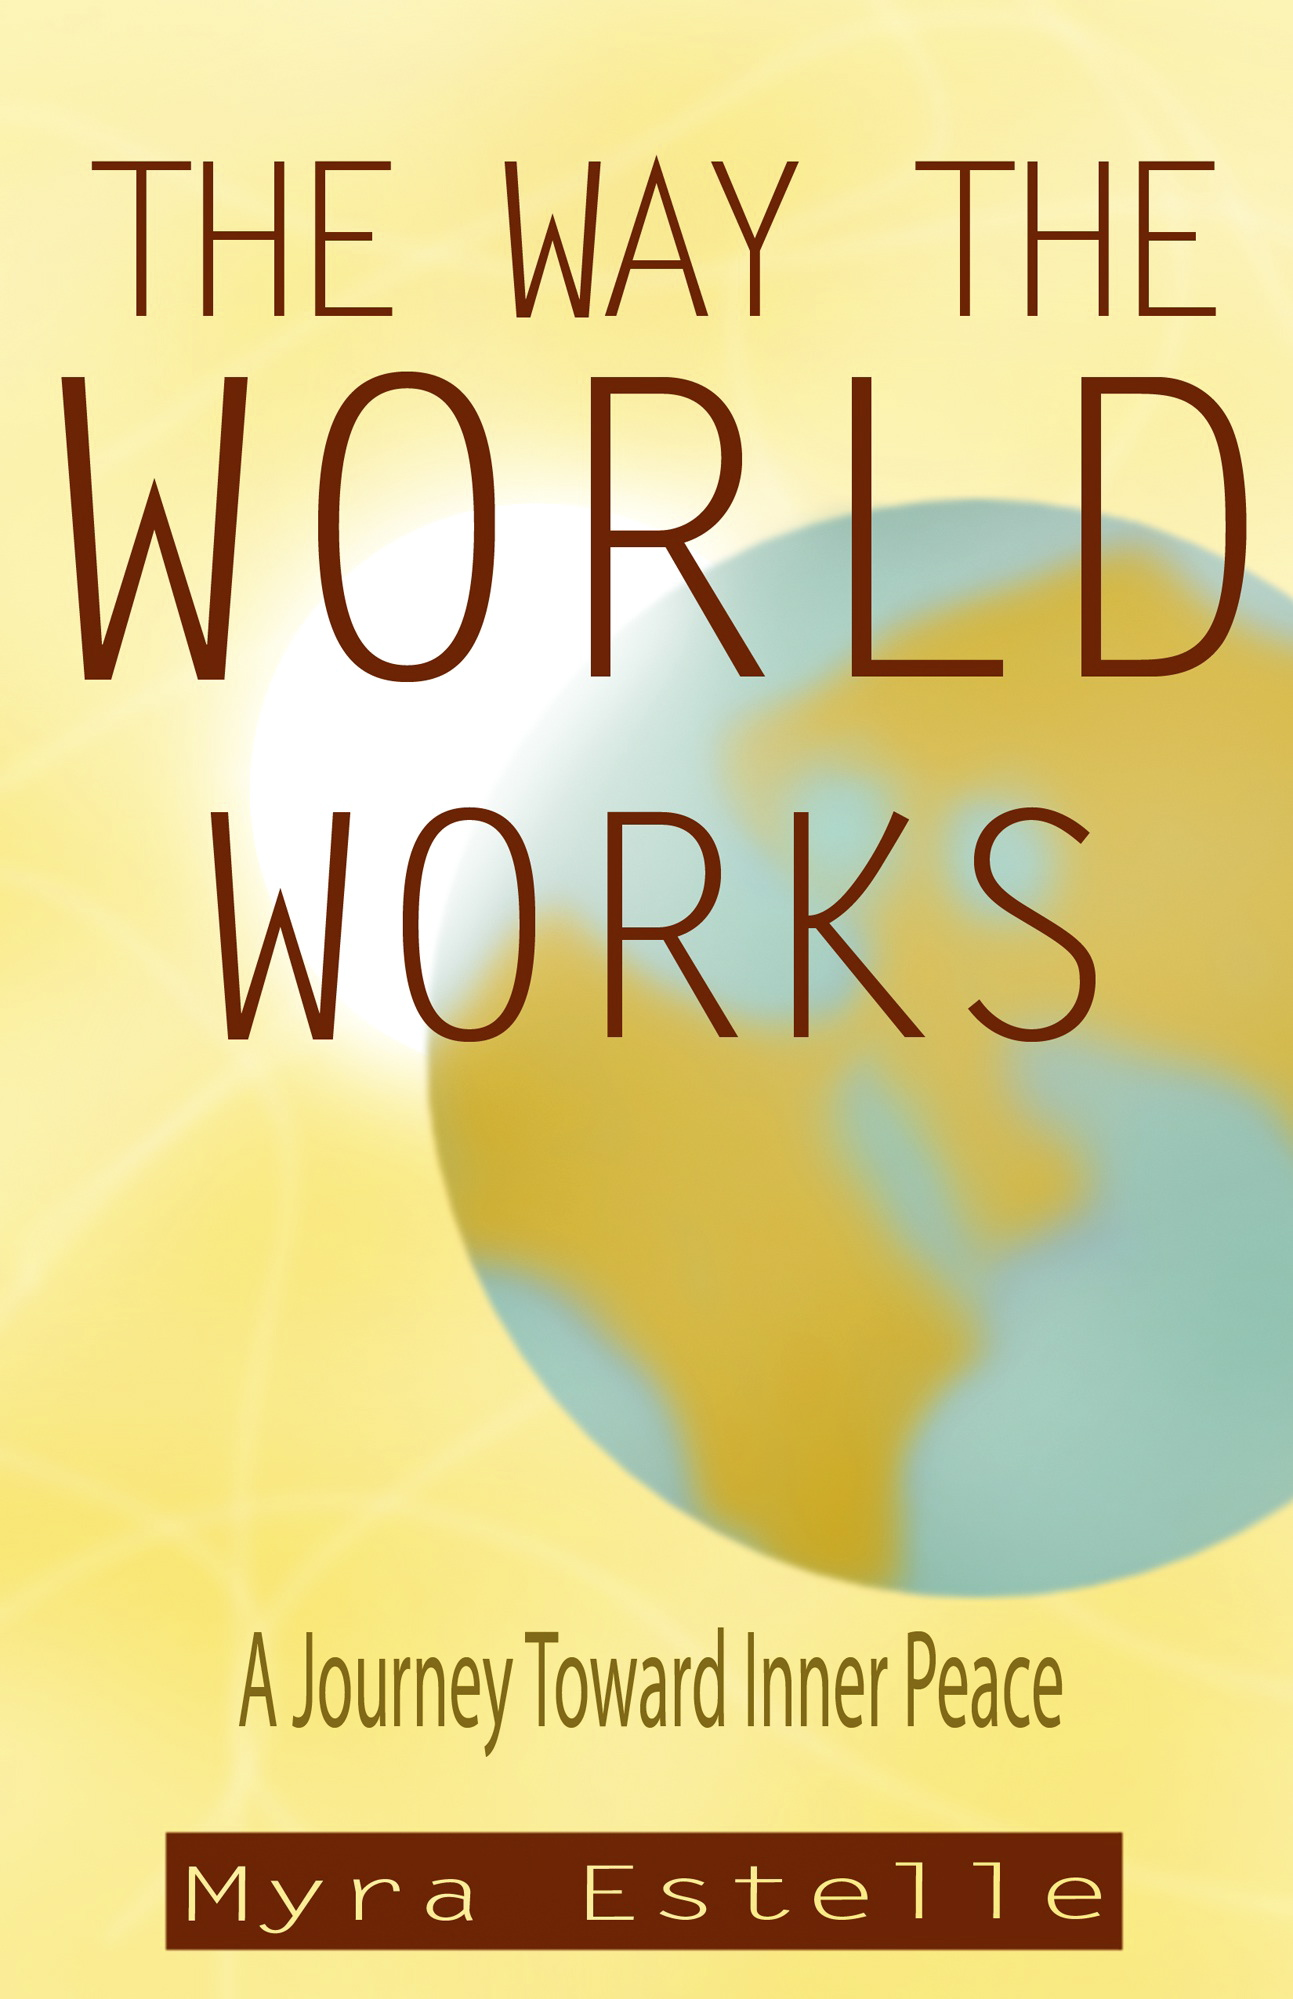 The Way The World Works: A Journey Toward Inner Peace